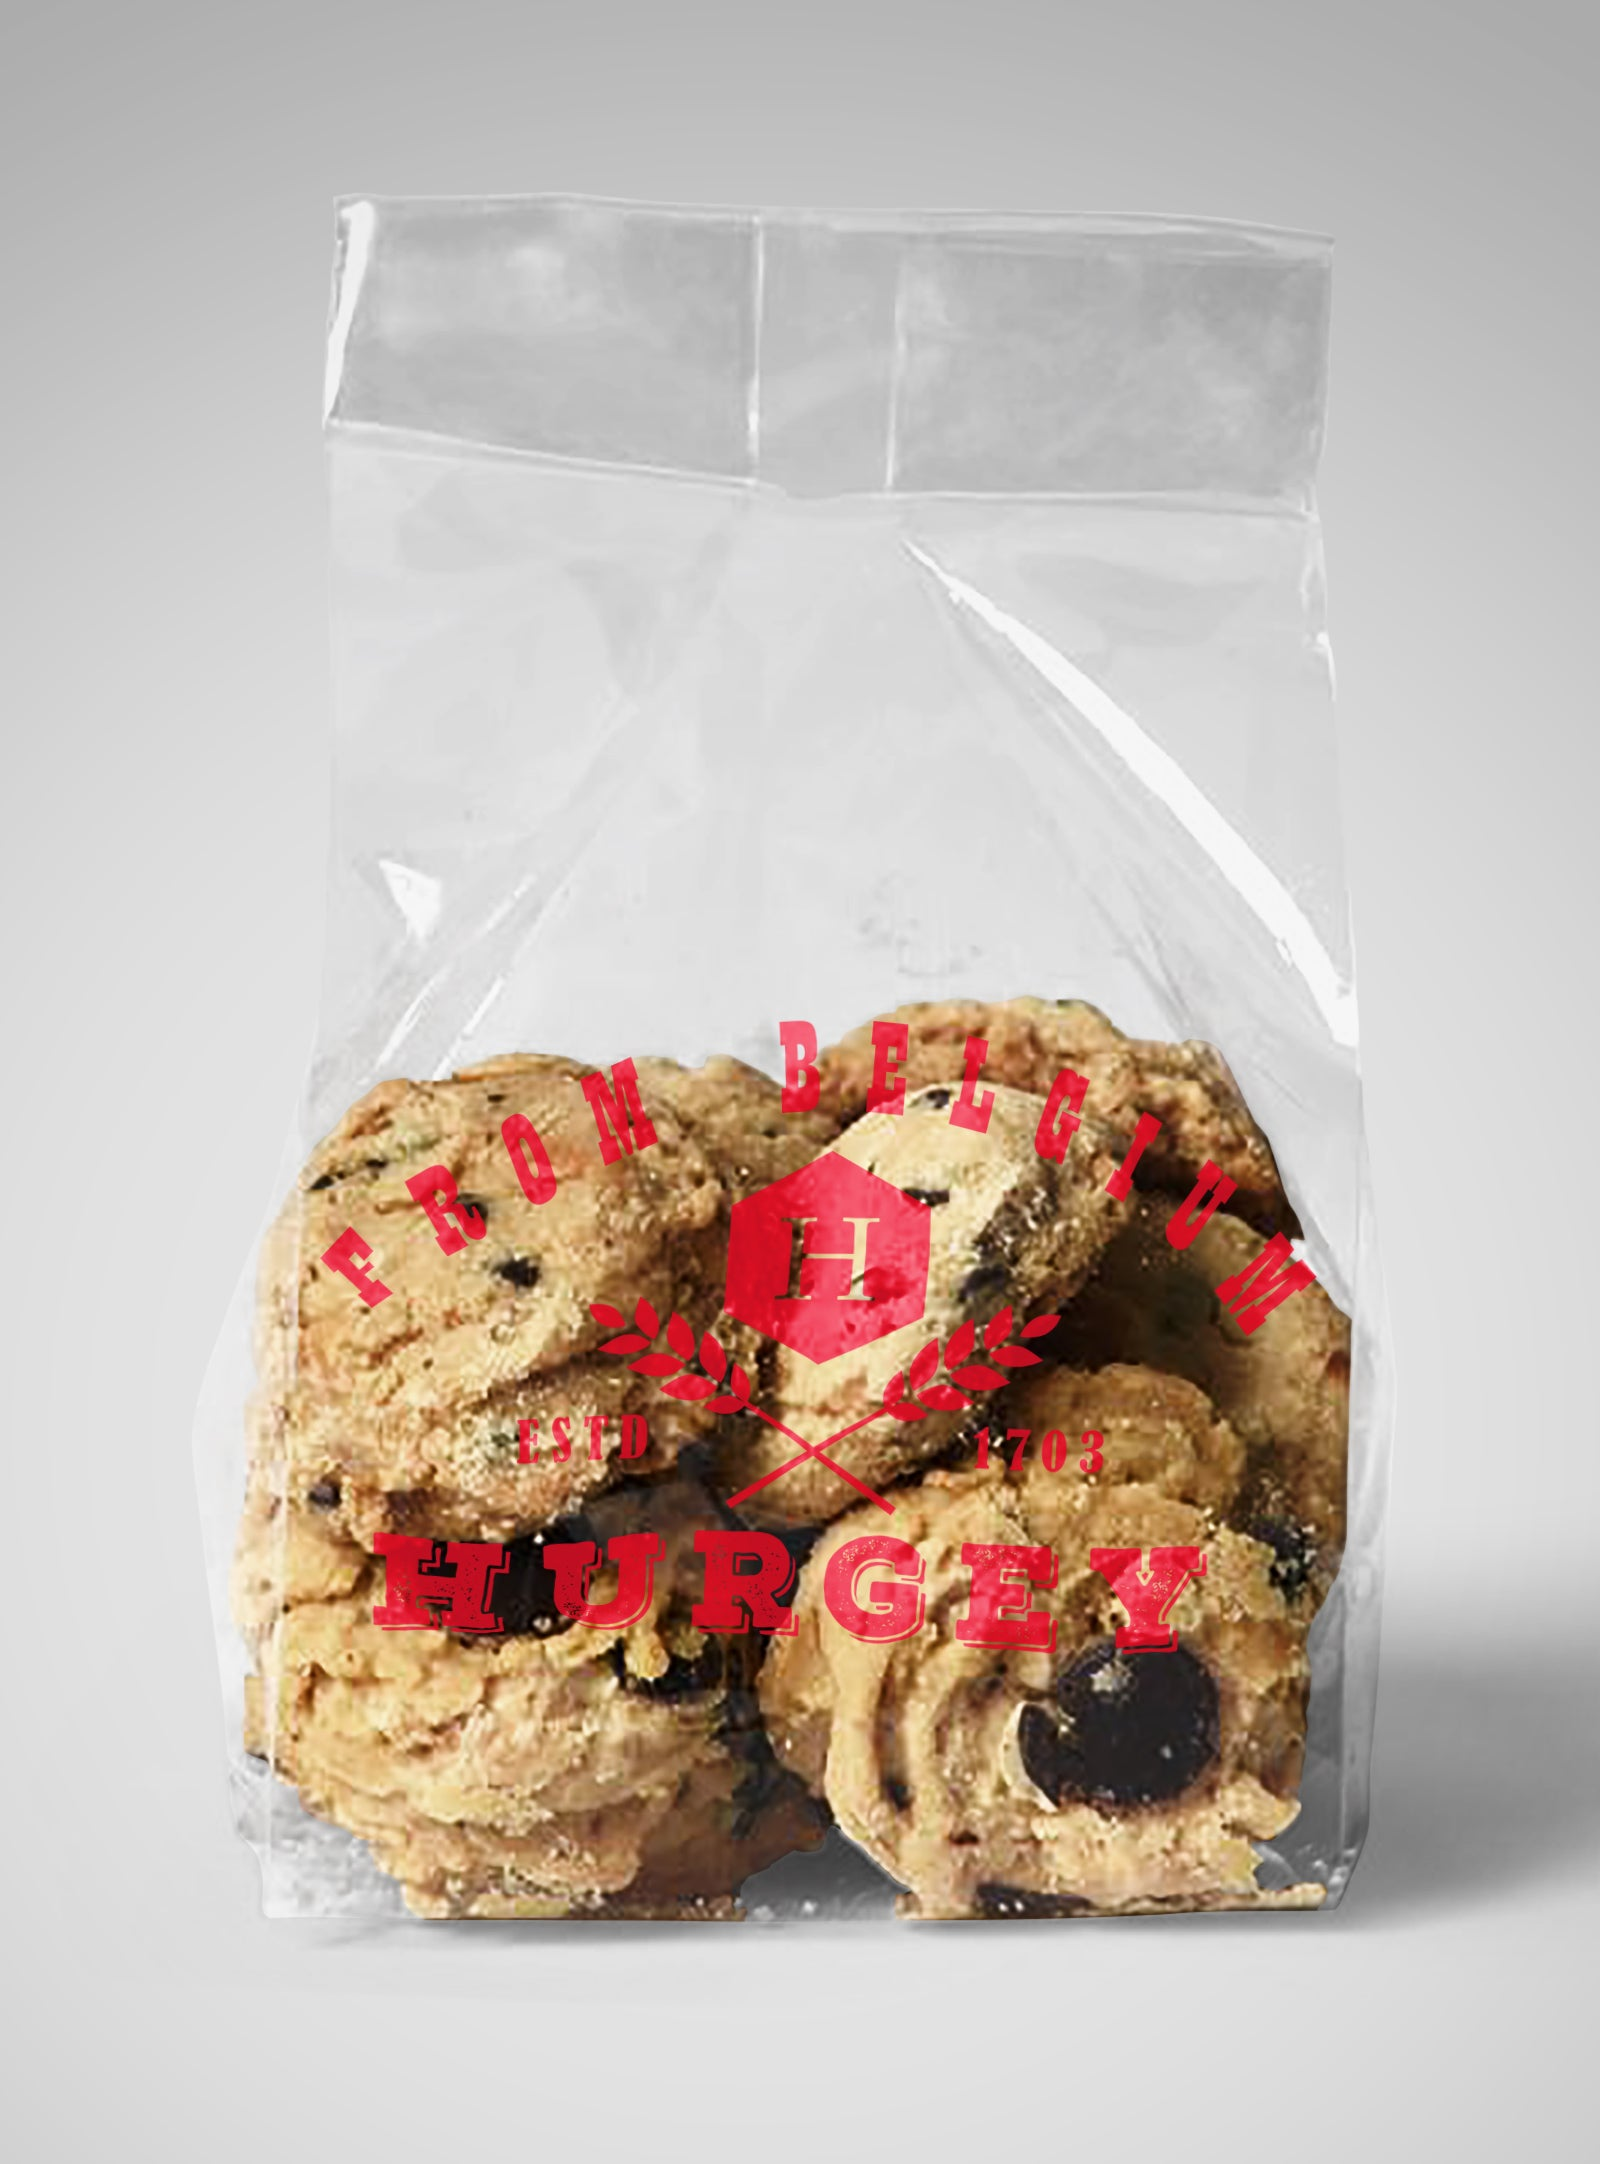 free bread and cookies plastic bag mockups